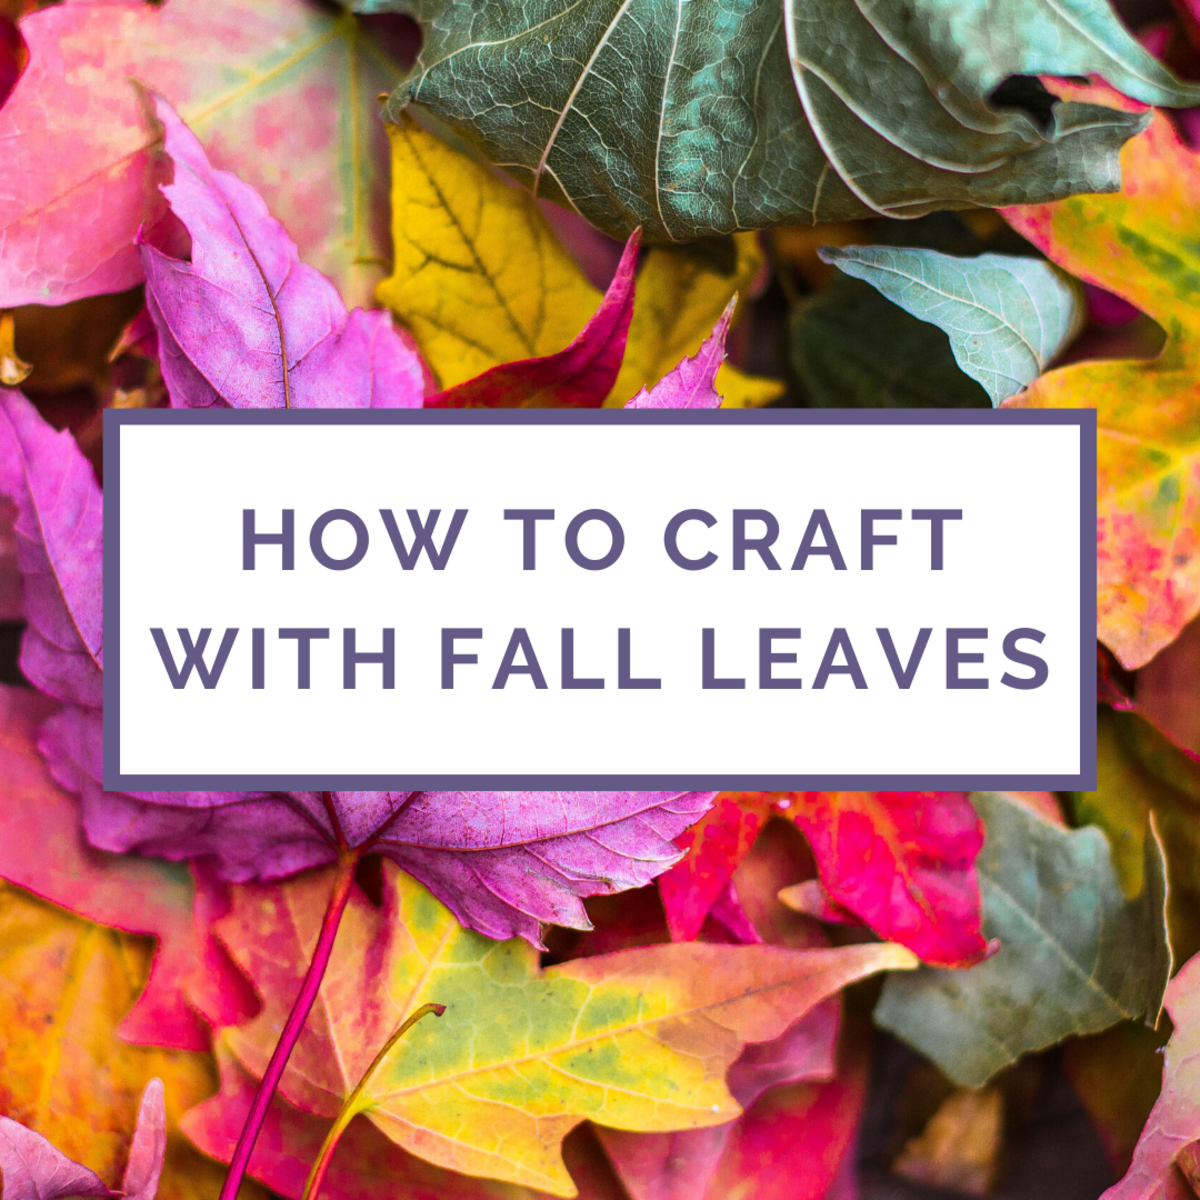 How to Craft With Autumn Leaves (3 Step-by-Step Tutorials)